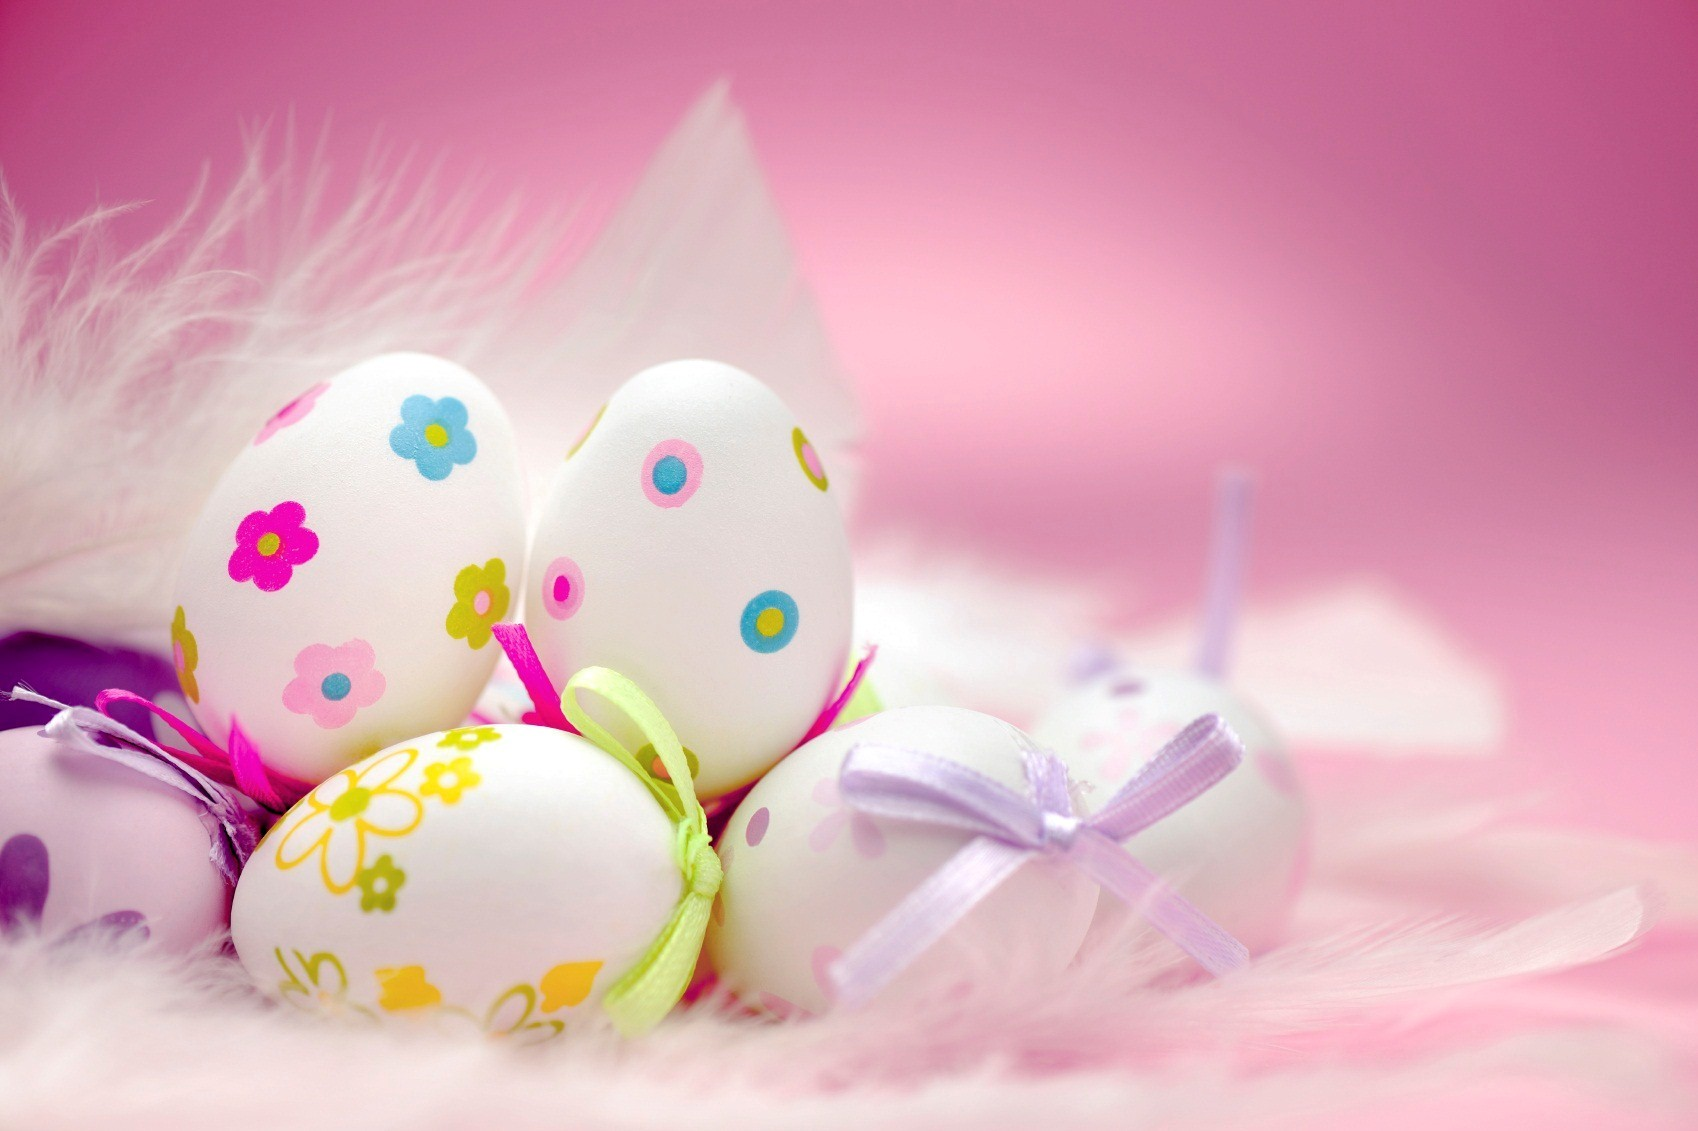 Free Easter Wallpapers For Laptops 1698x1131 Pink Easter Egg